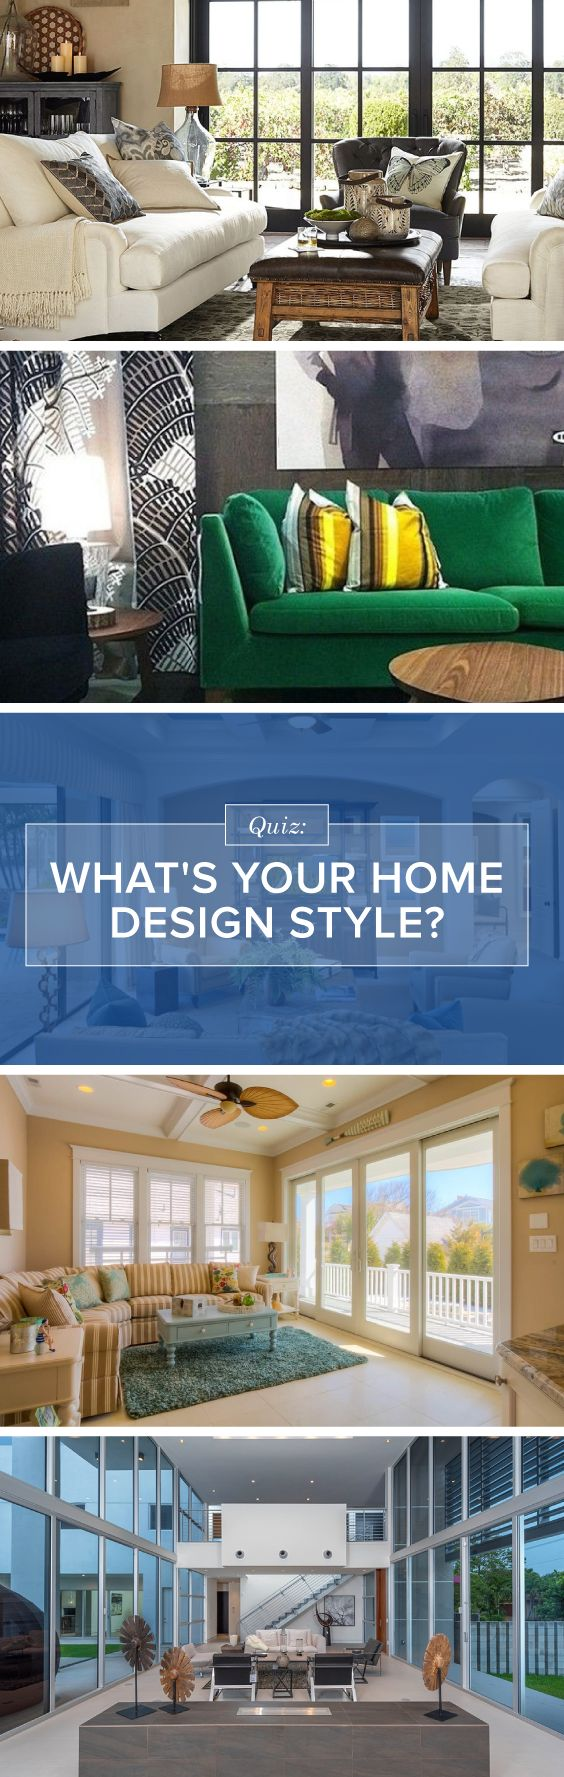 137 best images about home design tips on pinterest high